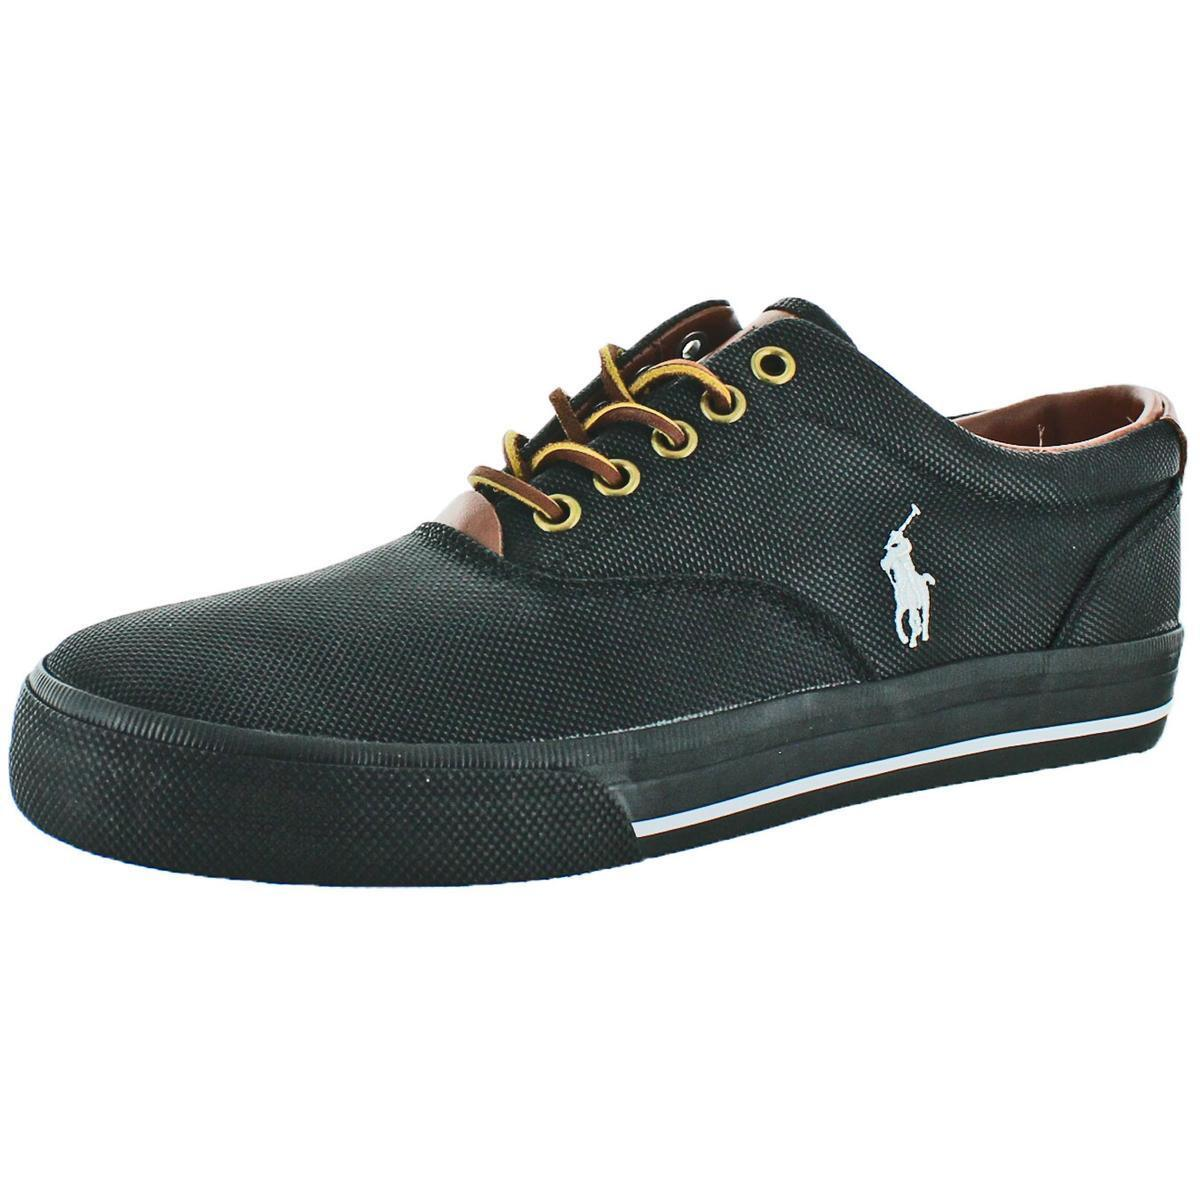 Polo Ralph Lauren Vaughn Men's Canvas Fashion Sneakers Shoes